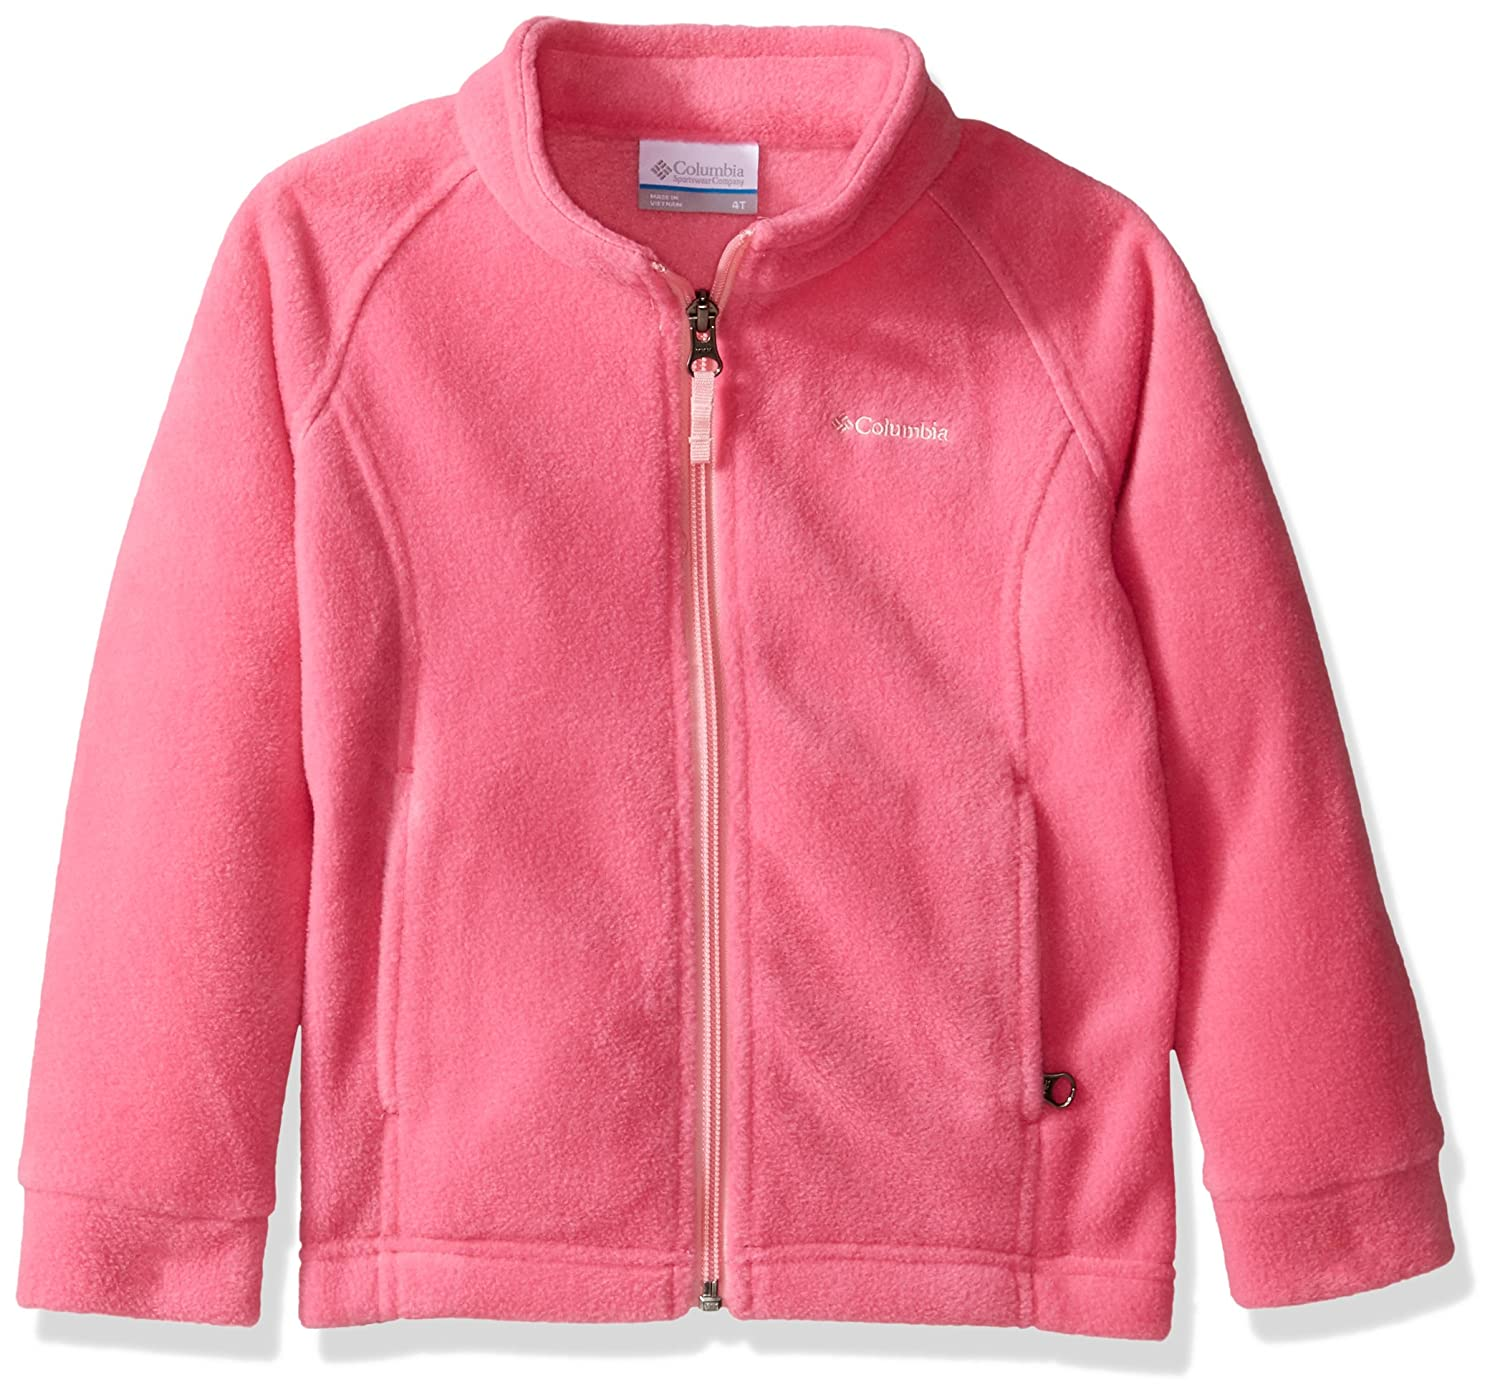 Columbia Girls' Benton Springs Fleece Columbia Children' s Apparel 1510631